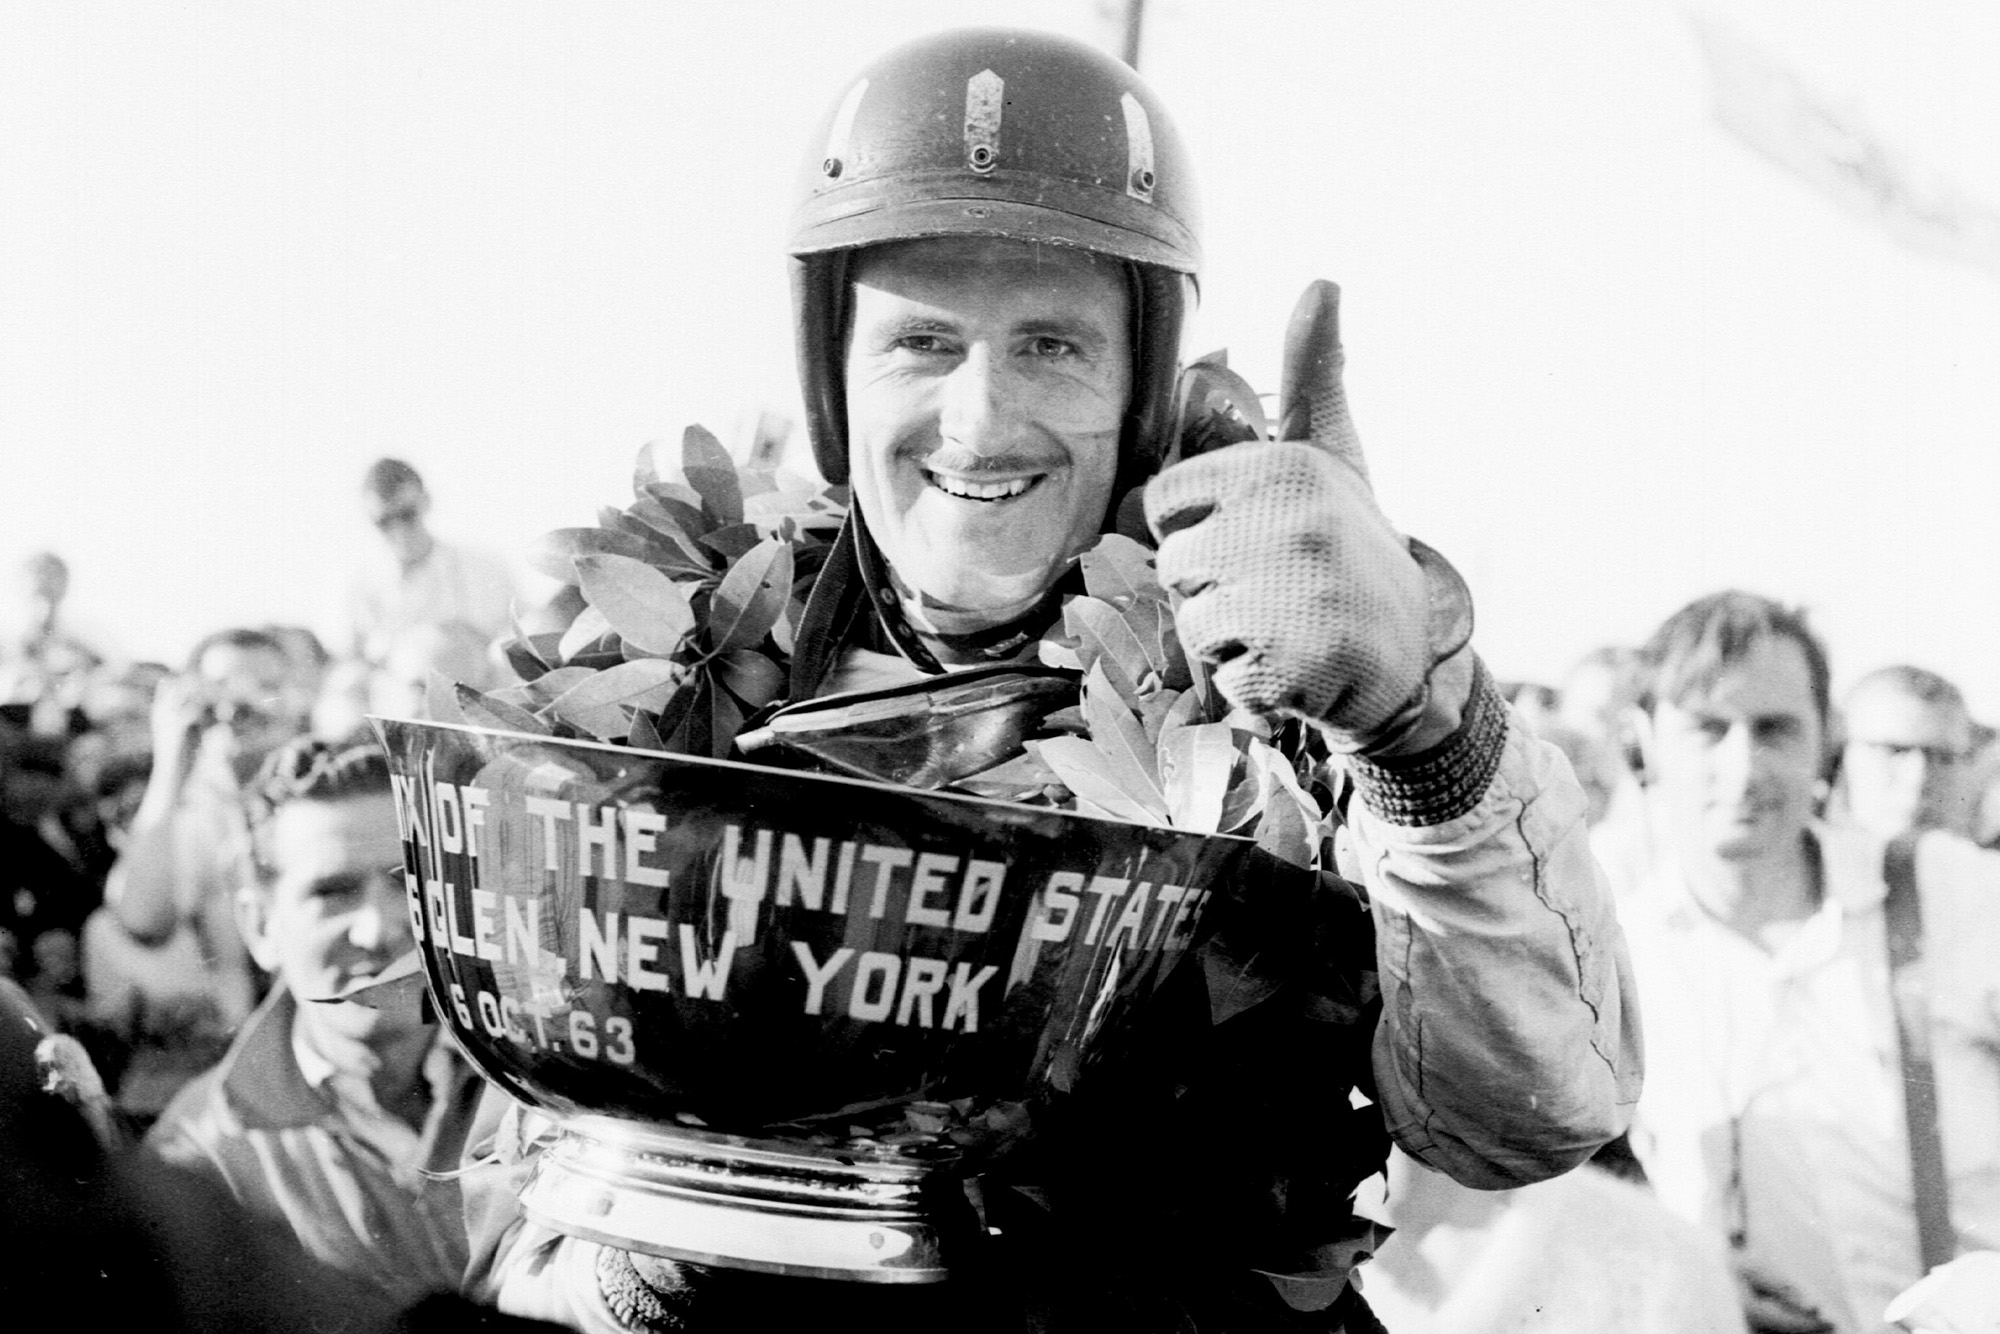 Graham Hill (BRM/Owen Racing Org.) celebrates his 1st position on the podium with a thumbs-up.